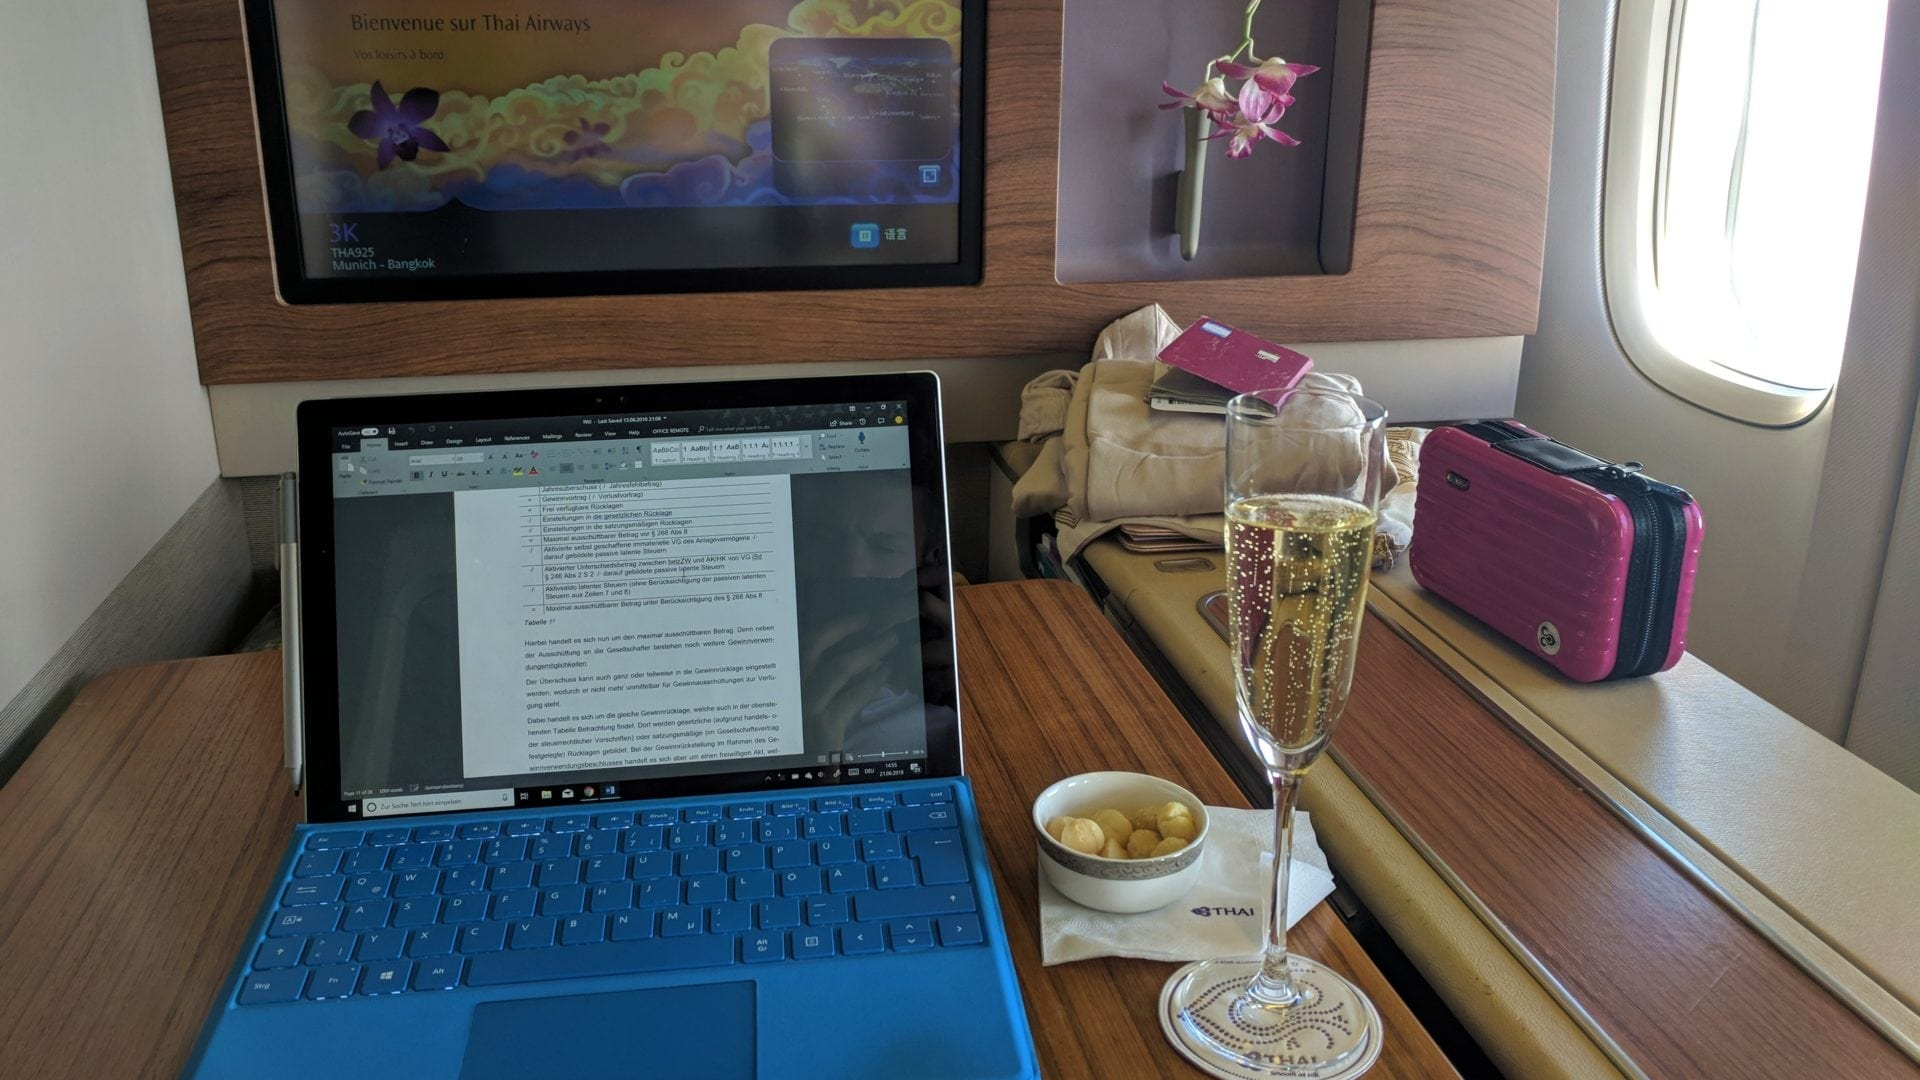 Thai First Class Boeing 747 Champagner